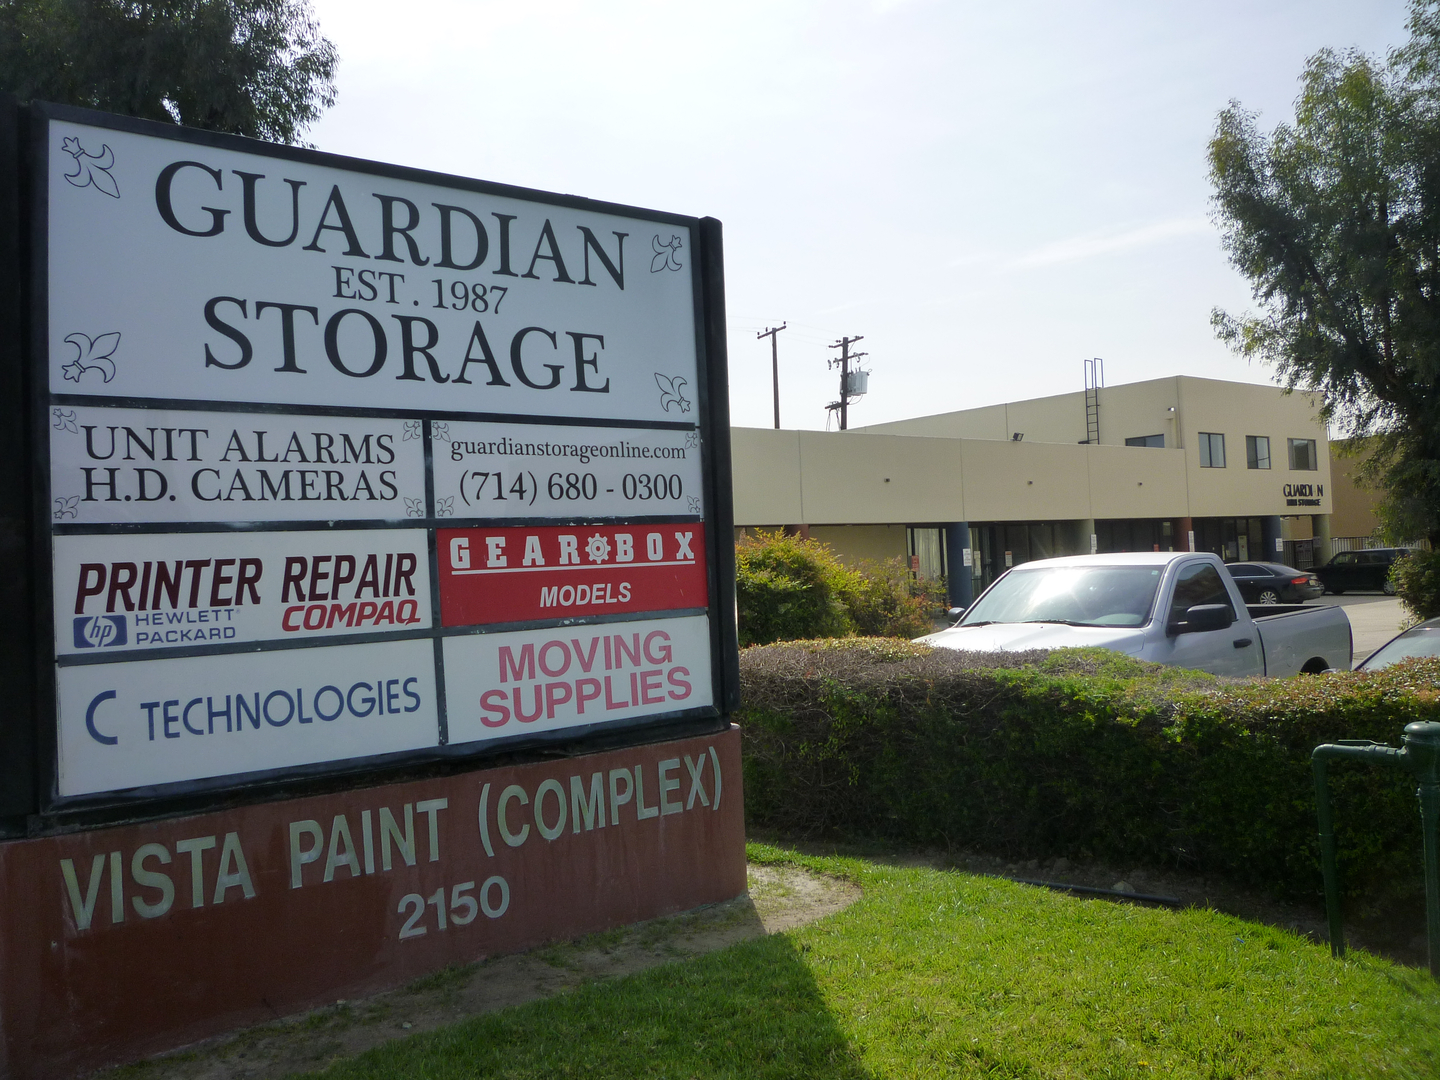 Guardian Storage self storage facility in Fullerton near Anaheim CA